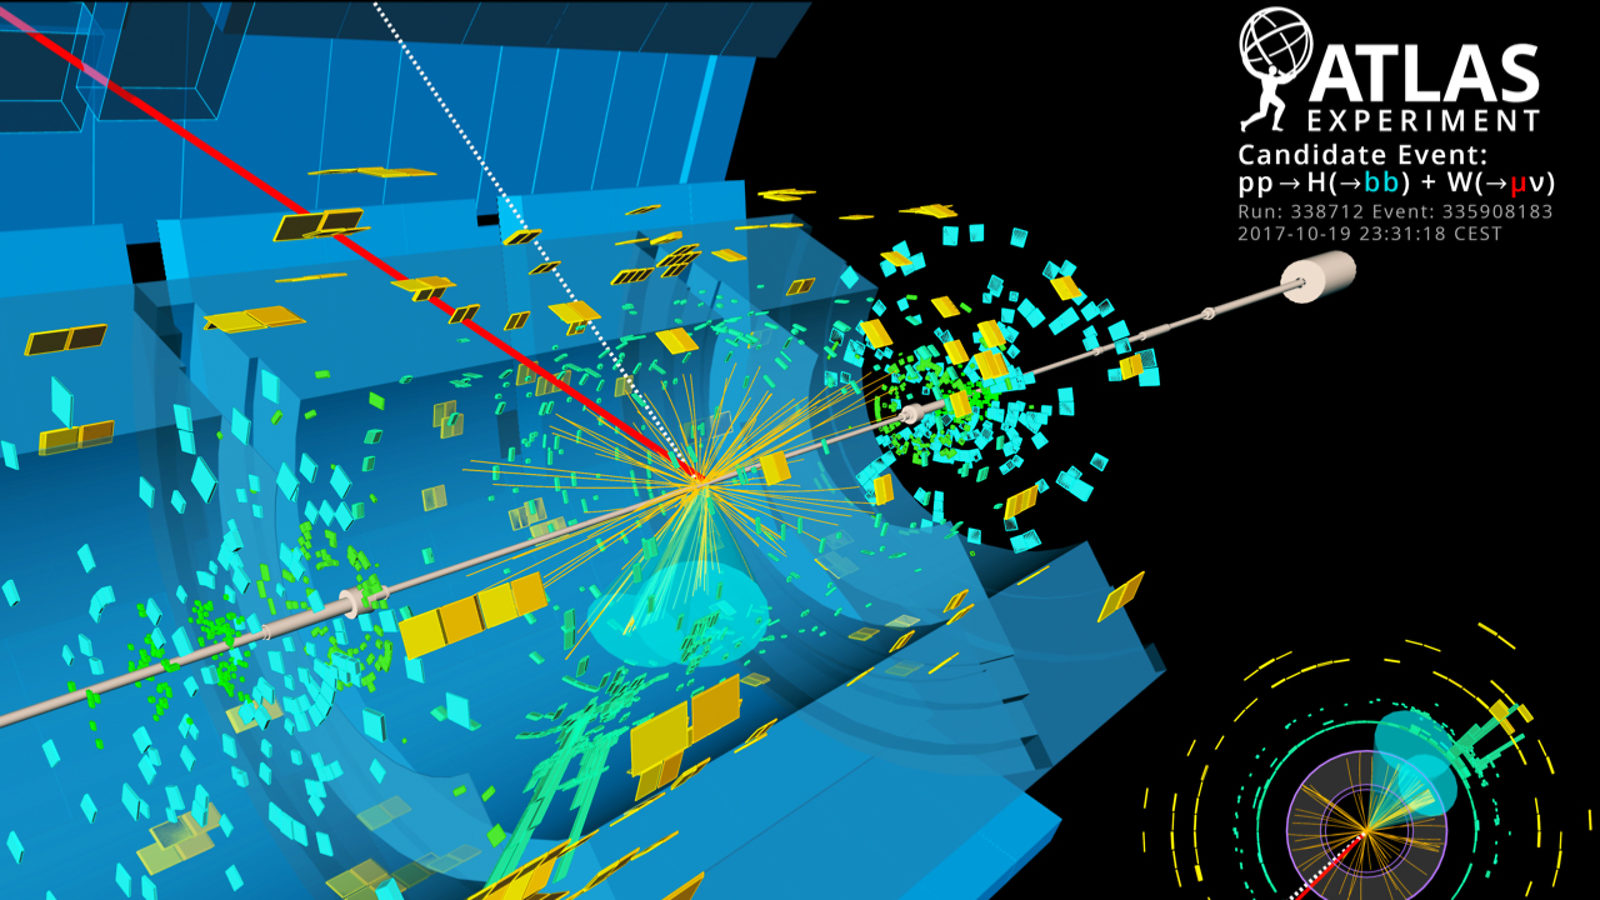 Scientists Finally Catch A Much Awaited Glimpse Of Higgs Boson Decay